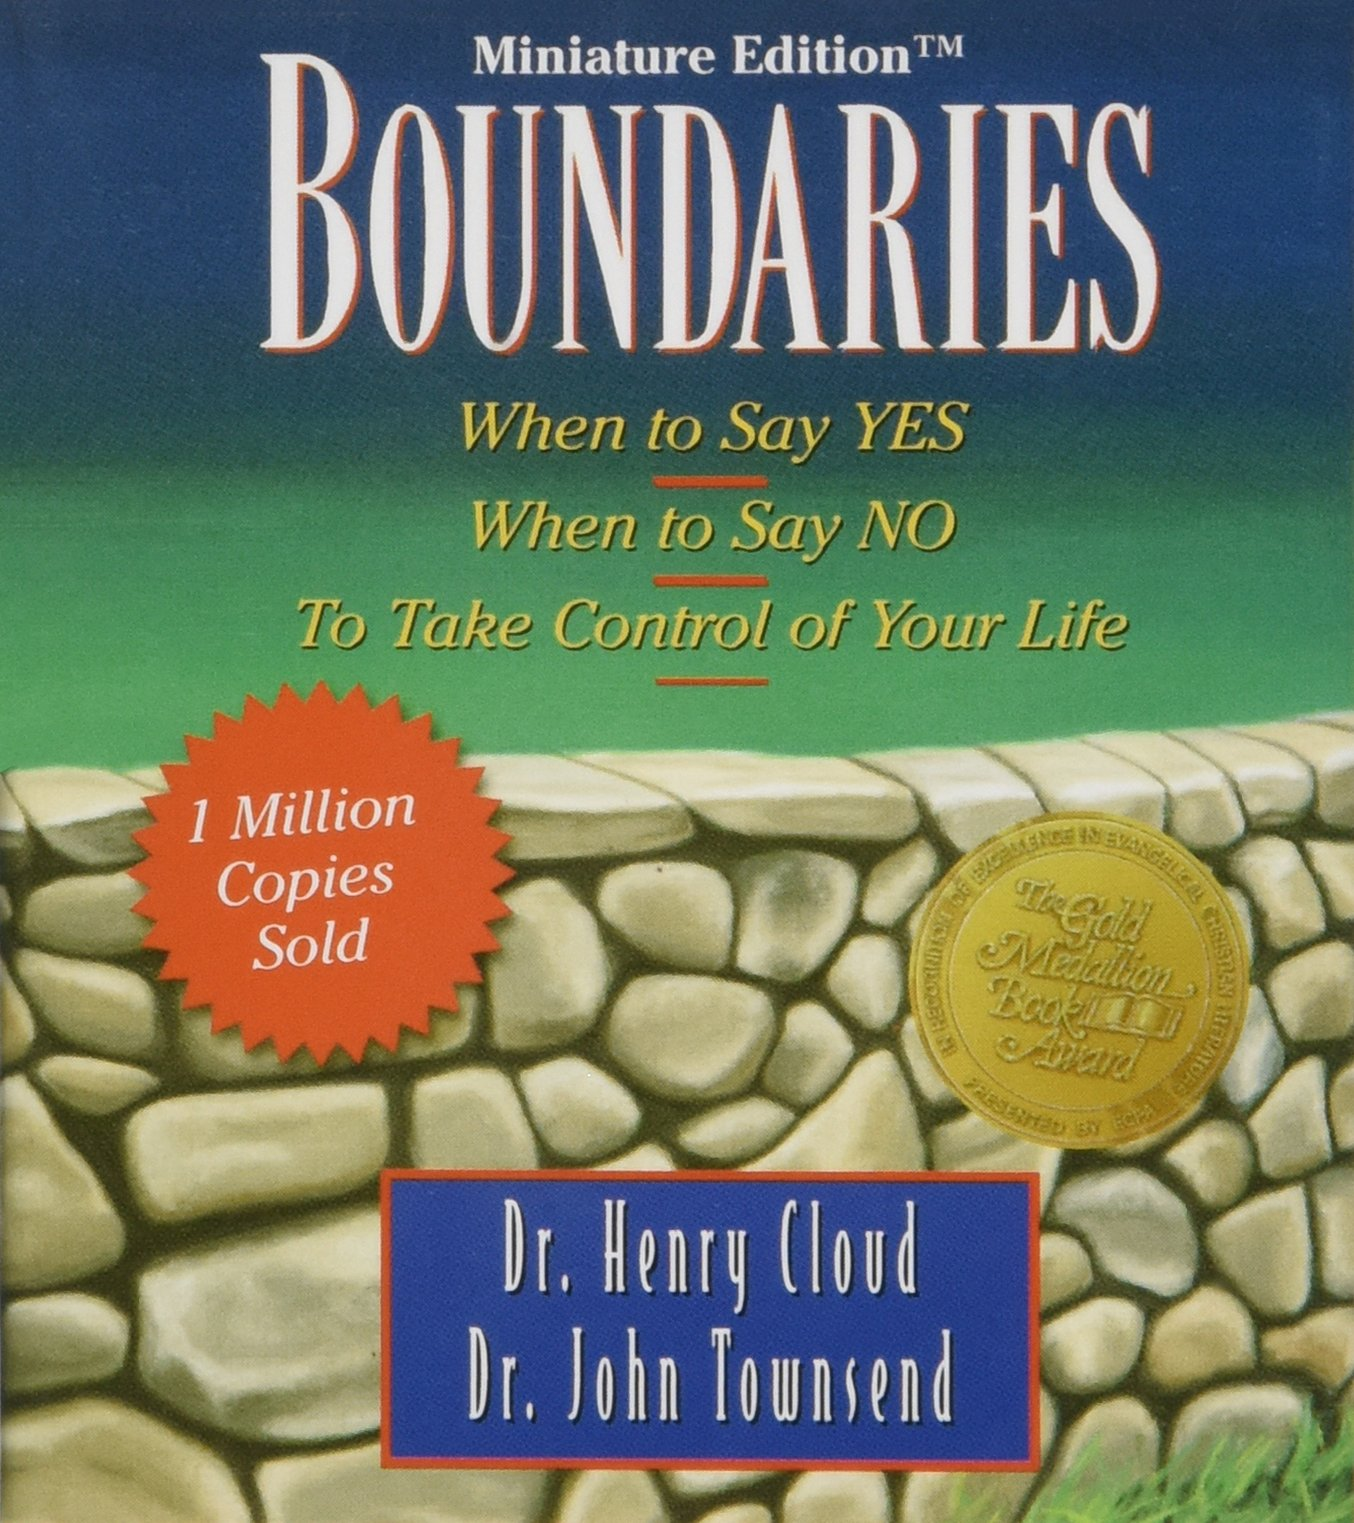 Boundaries: When to Say Yes, When to Say No-To Take Control of Your Life [Miniature Edition] (Miniature Editions) ebook